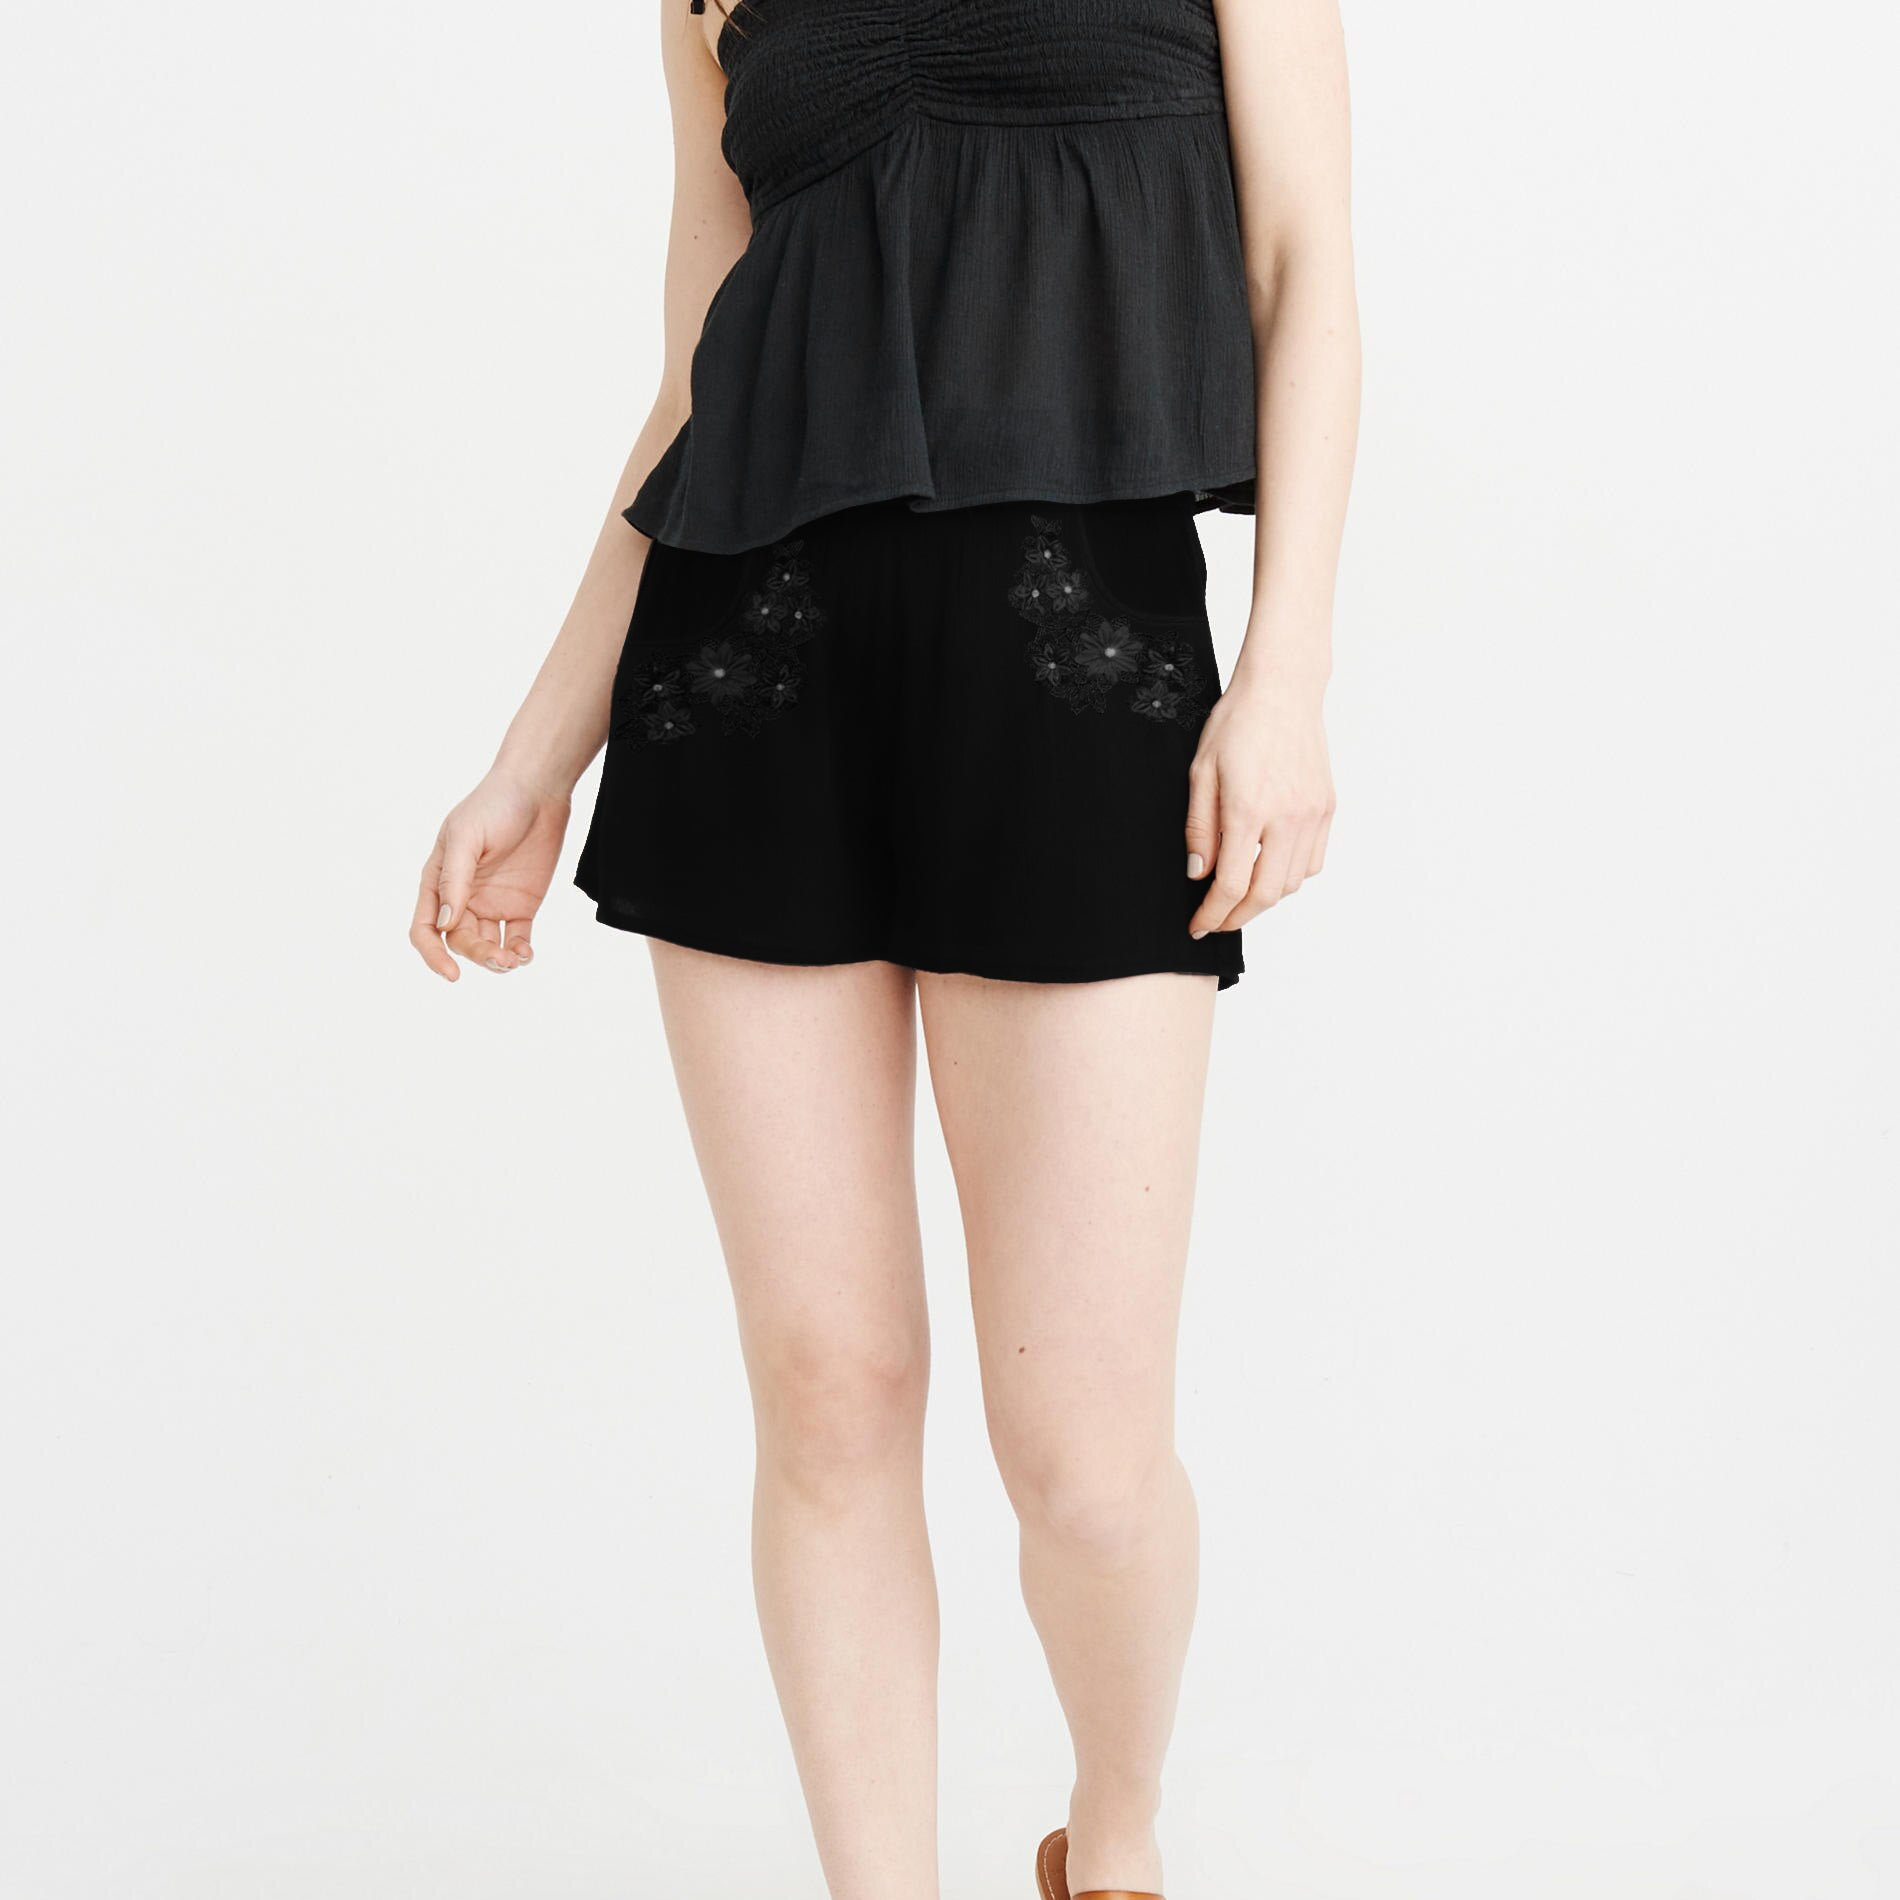 Ochanal Stylish Terry Viscose Short For Ladies-Black-BE8727